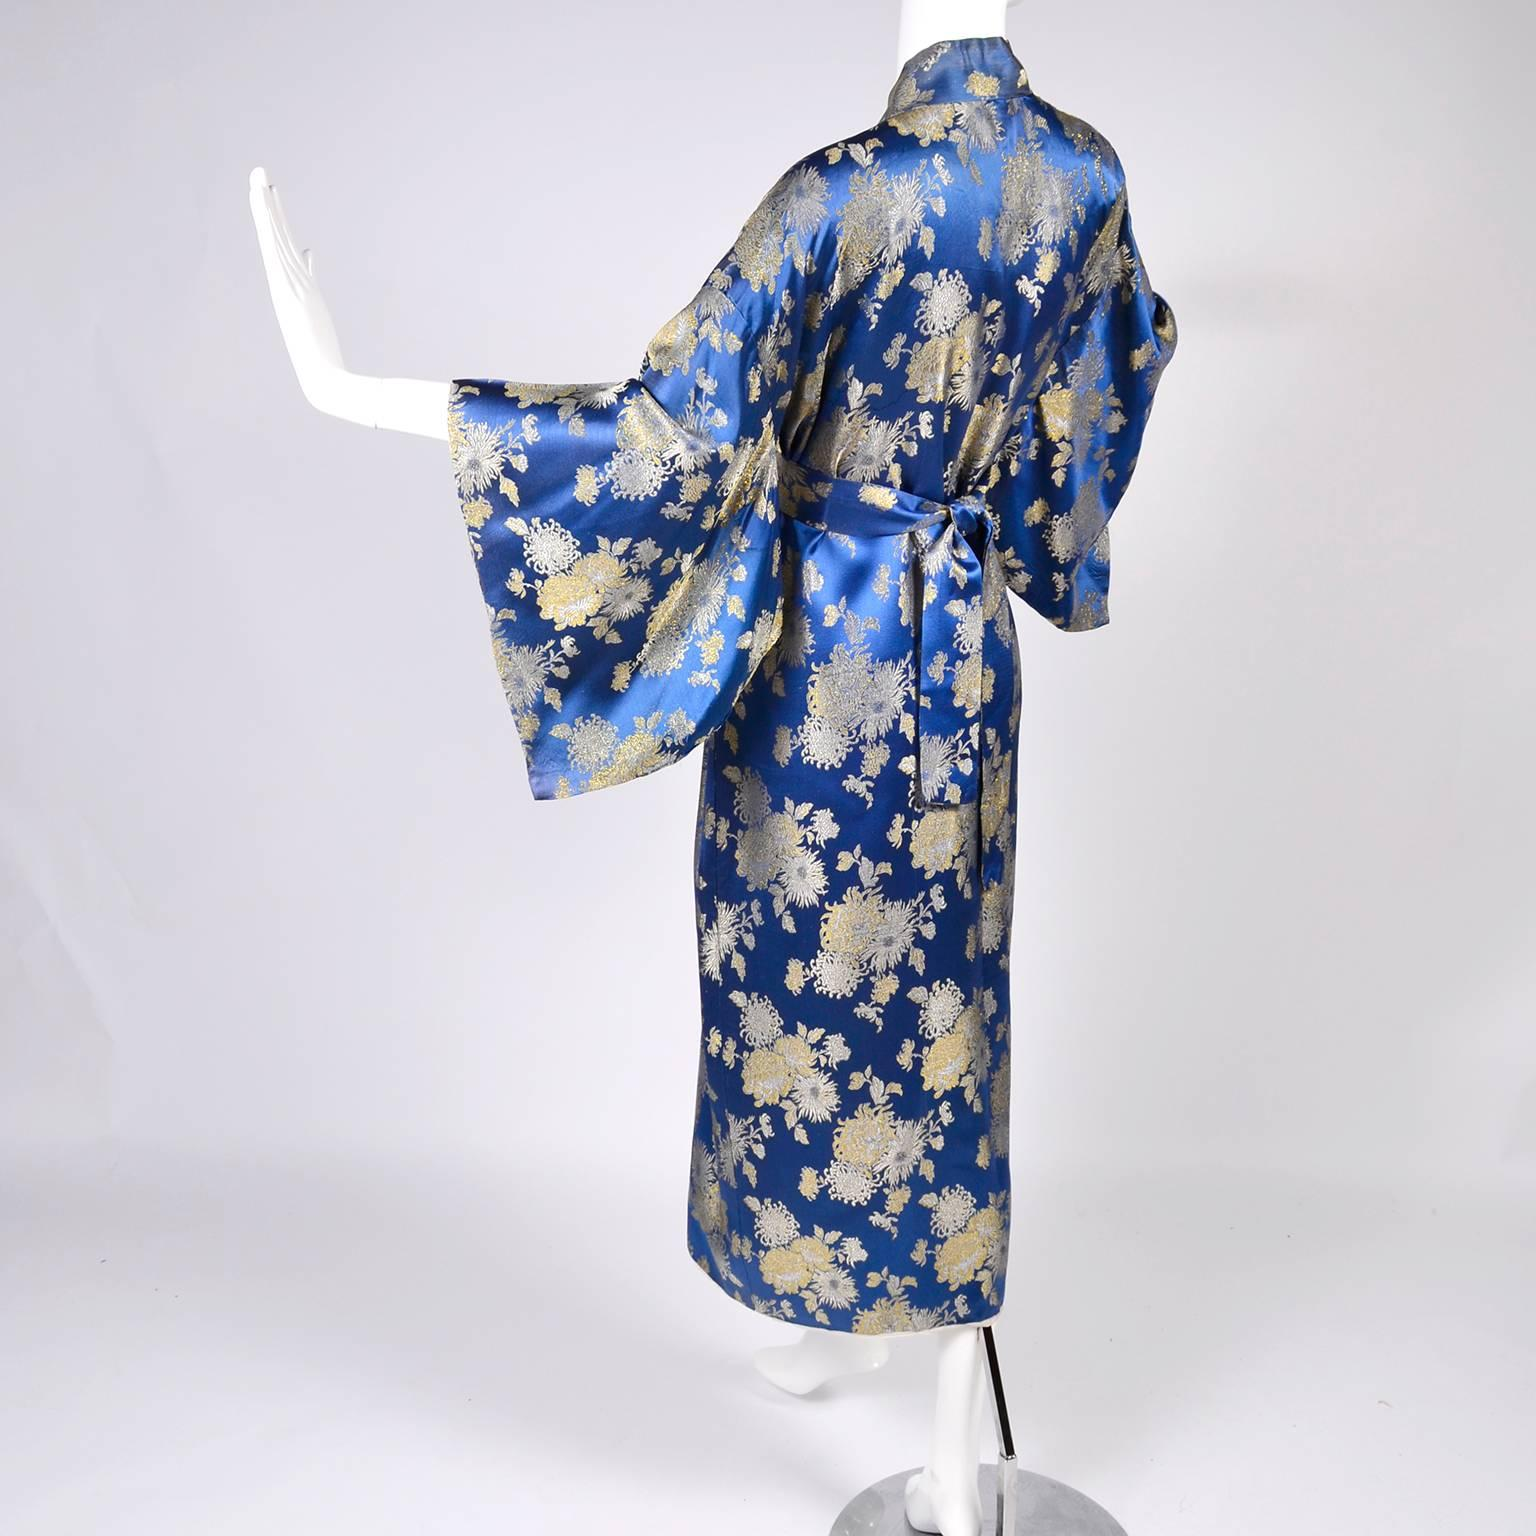 79815860ec Japanese Vintage Kimono Robe in Blue Silk Gold Metallic chrysanthemum  Embroidery For Sale at 1stdibs